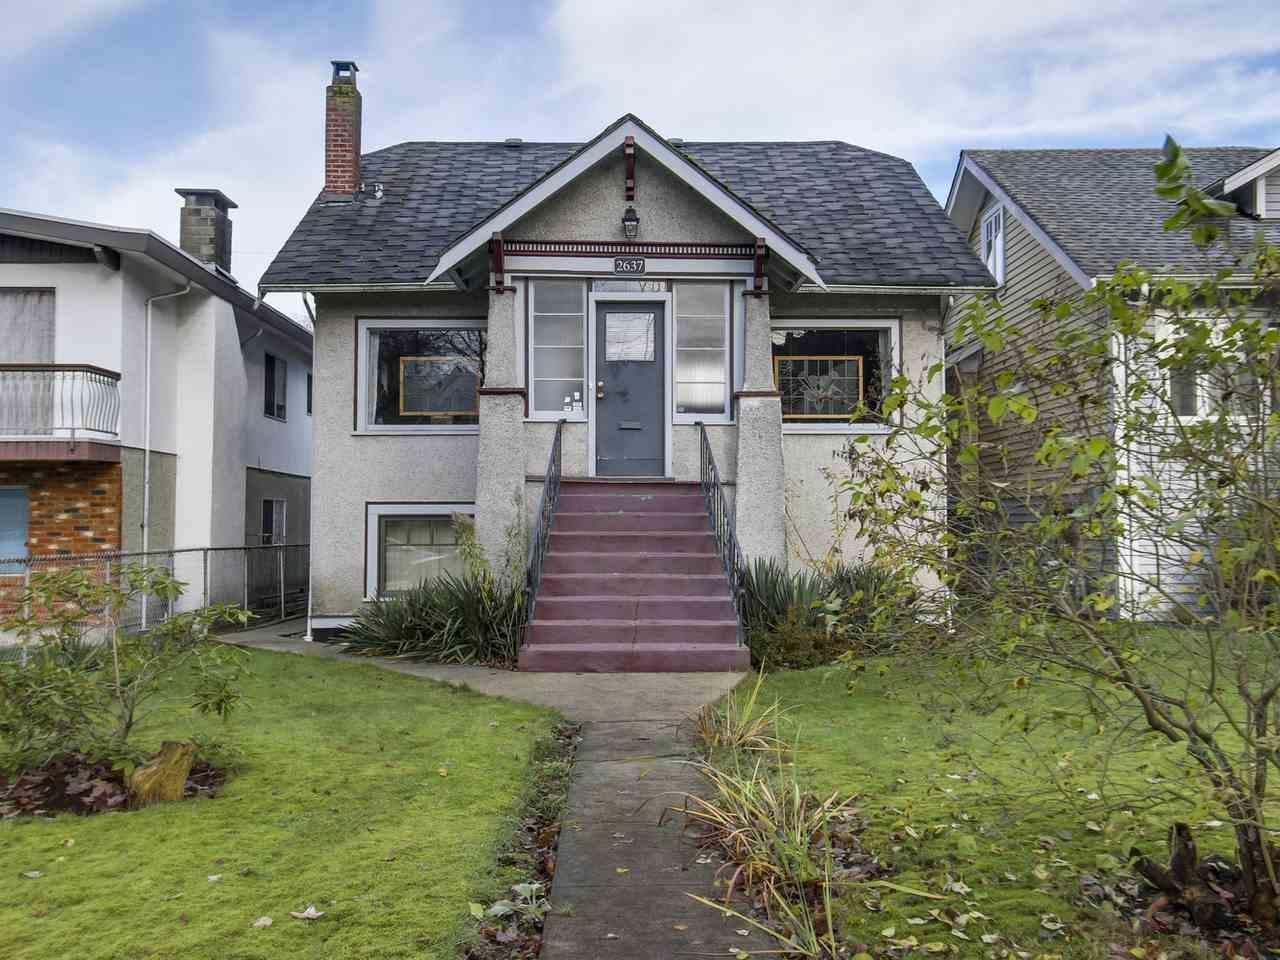 R2122919 - 2637 CAMBRIDGE STREET, Hastings East, Vancouver, BC - House/Single Family